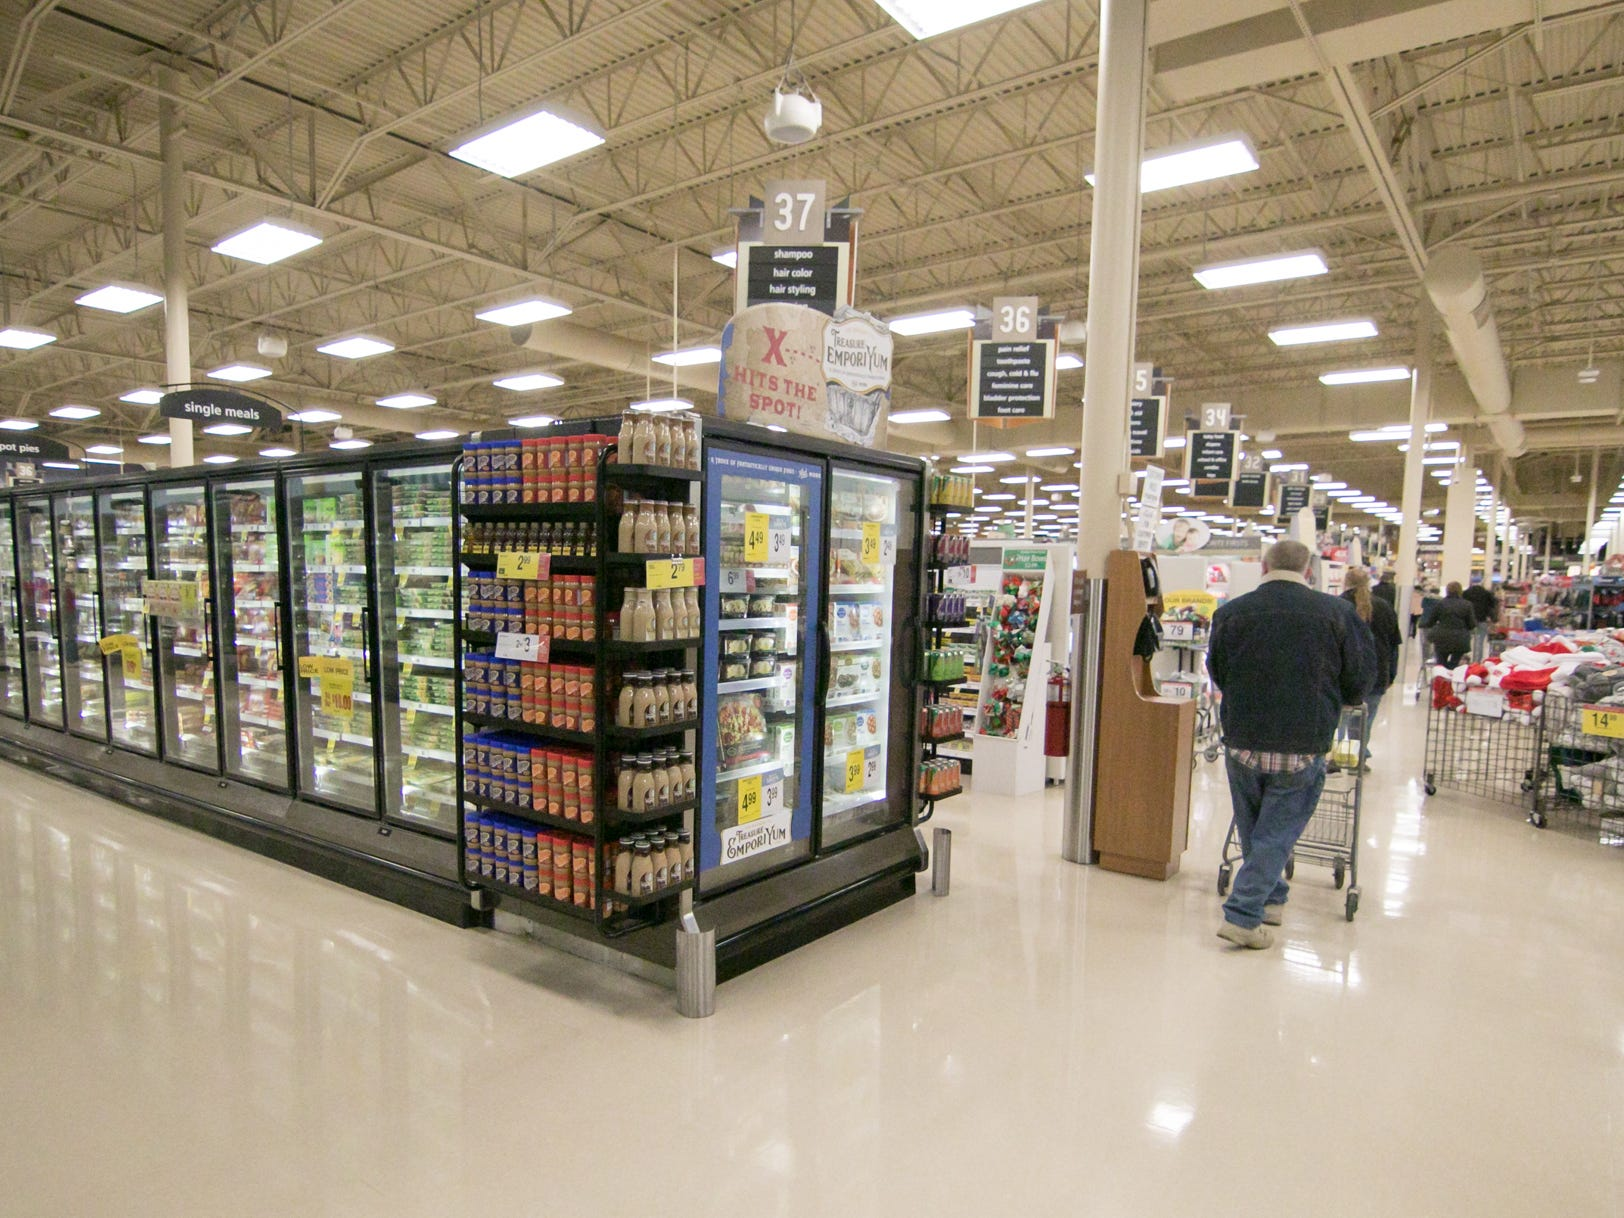 The Brighton Kroger celebrated its expansion Wednesday, Dec. 5, 2018. The store is more than 40,000-square feet larger.